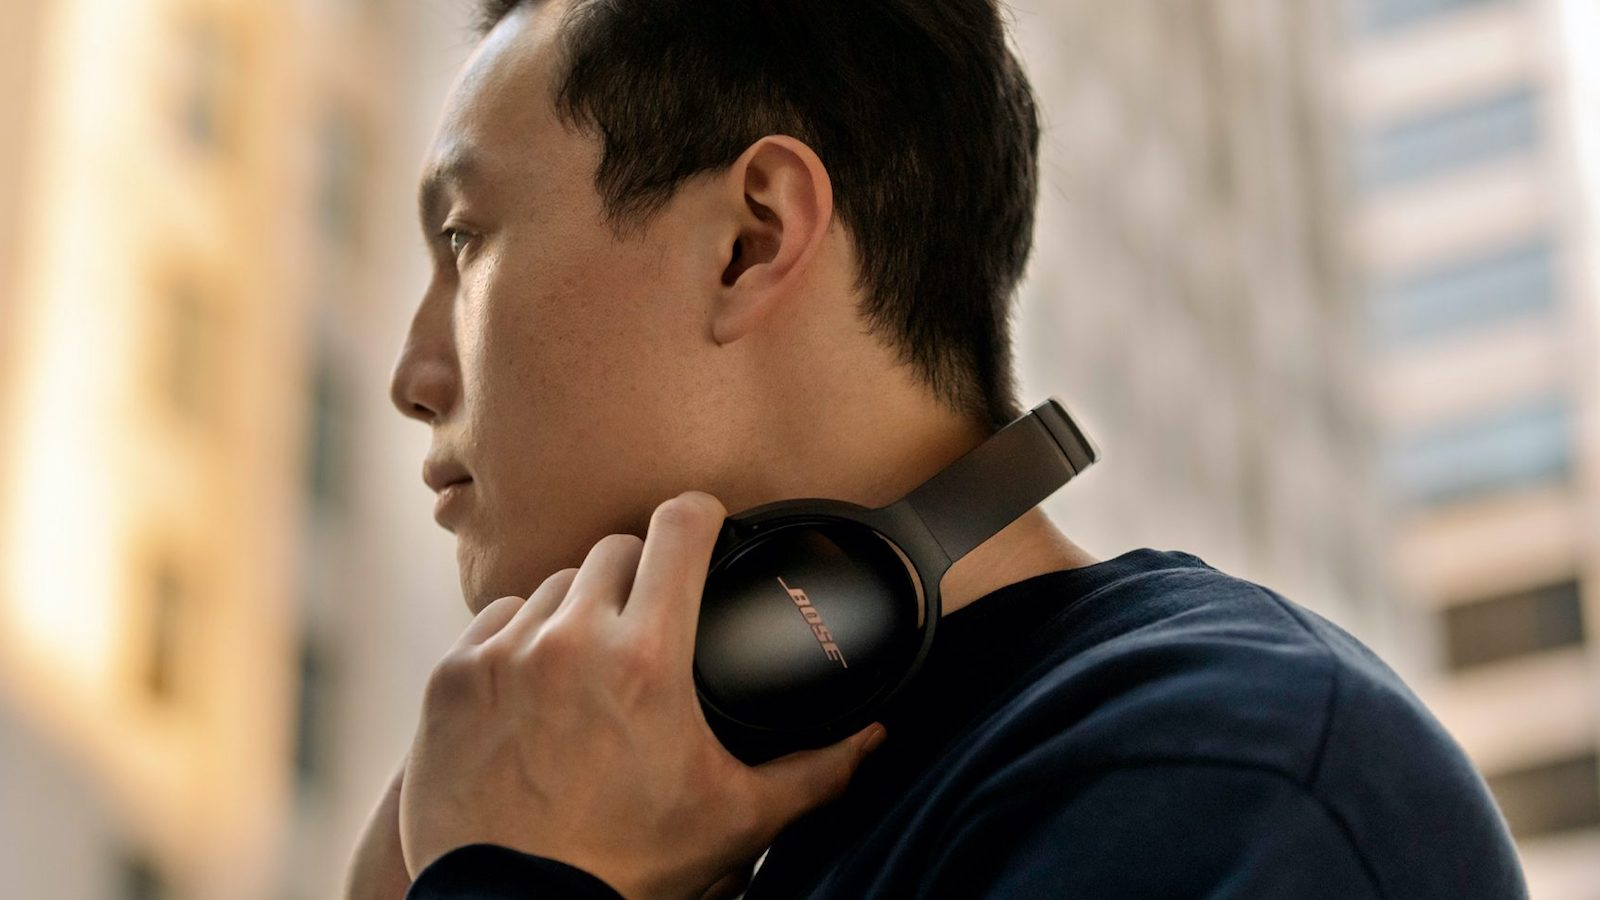 Bose QuietComfort 35 II Gaming Headset​ features voice assistance & a 40-hour battery life